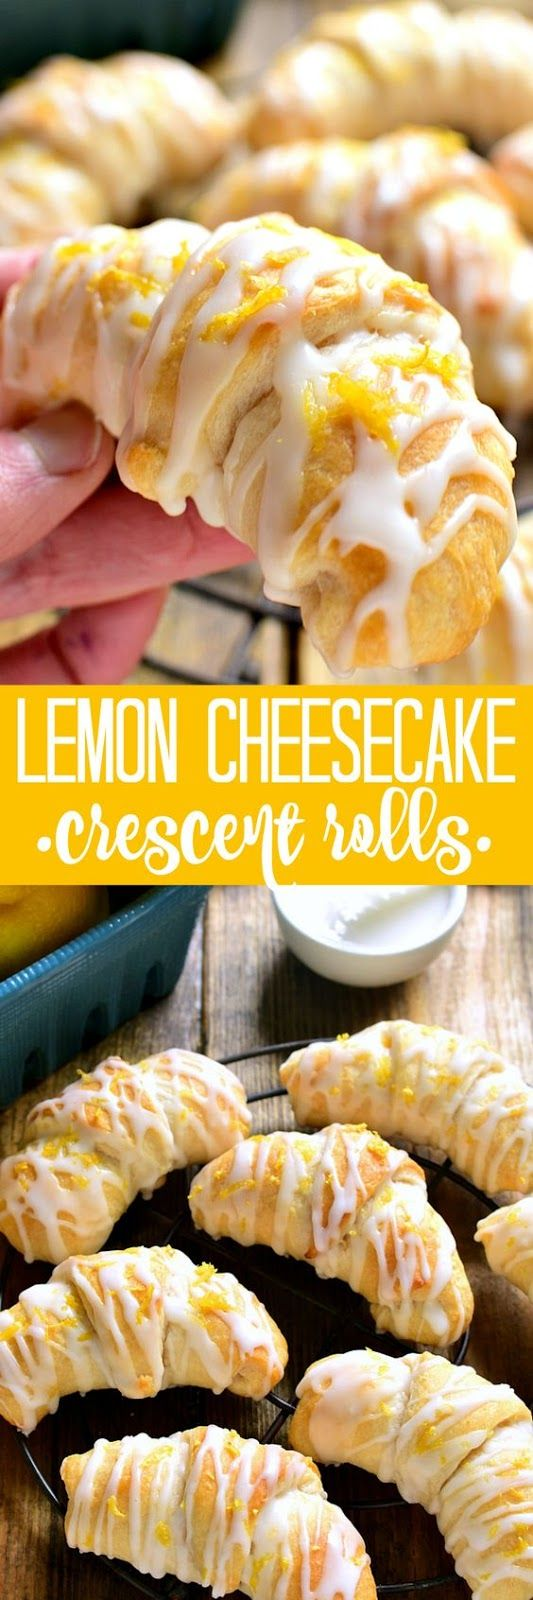 INGREDIENTS Rolls 1 package (8 count) refrigerated crescent rolls 4 oz. cream cheese, cold 2 Tbsp. granulated sugar ¼ tsp. ...